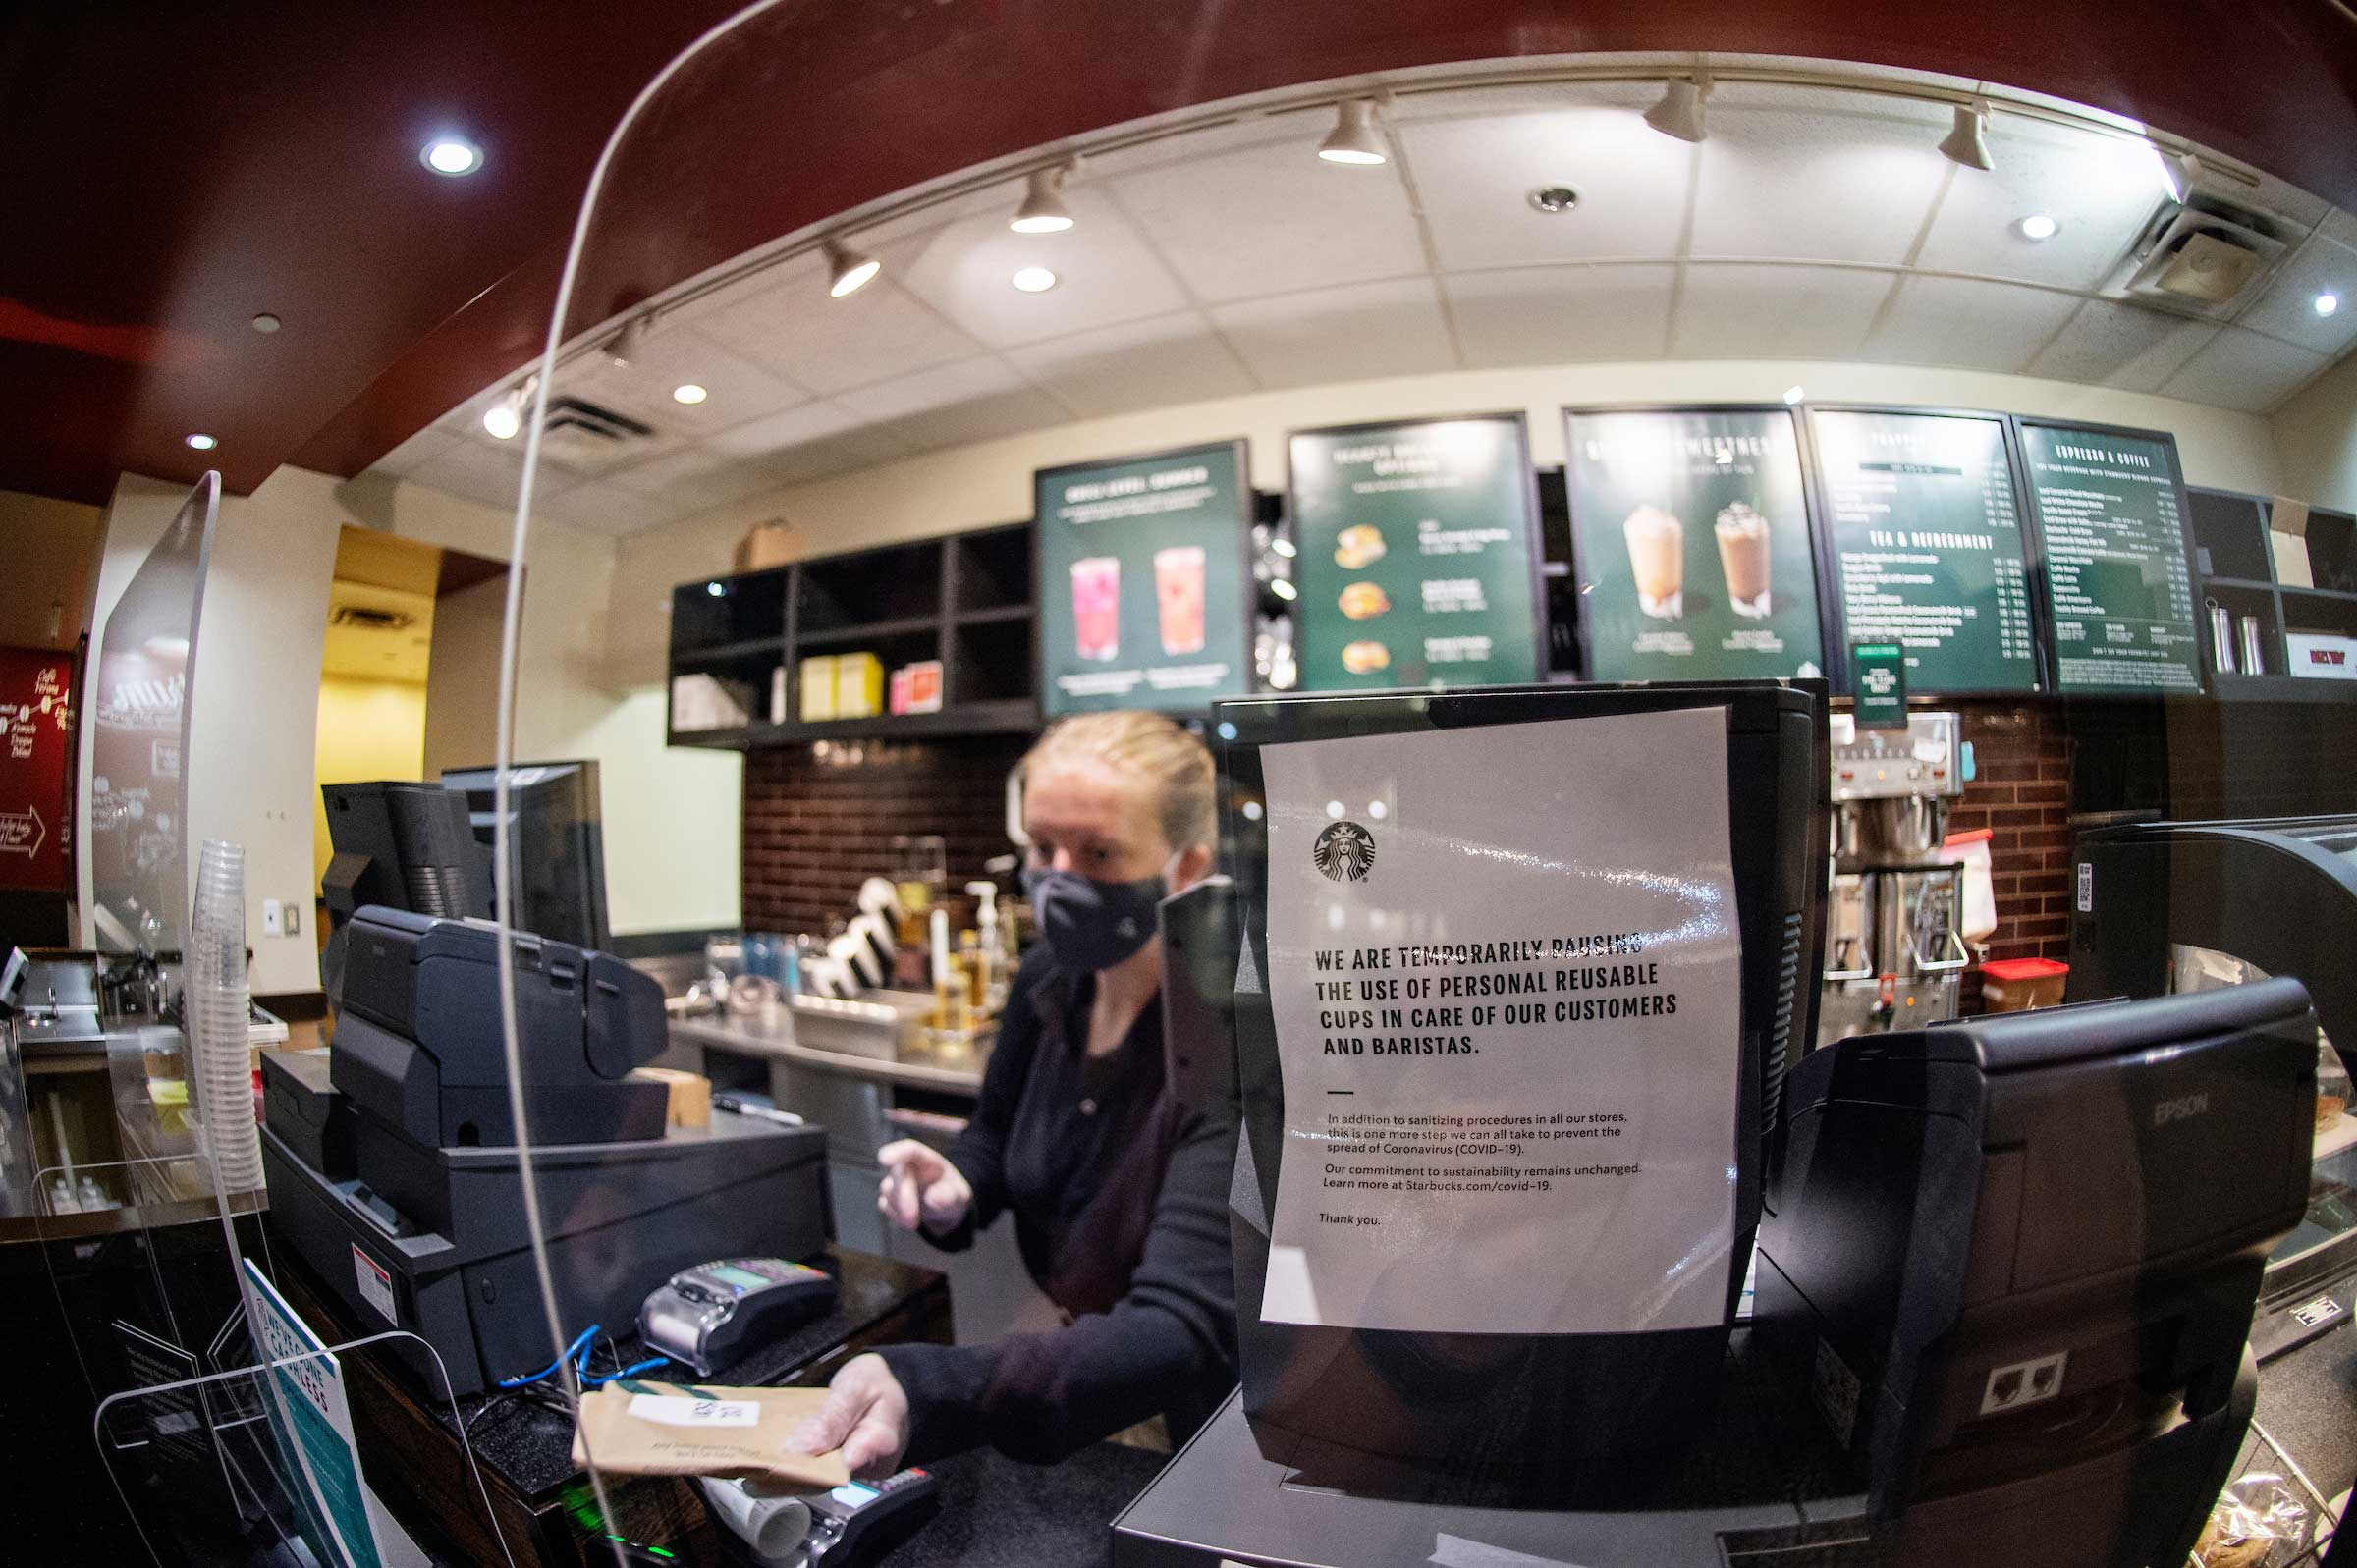 COVID signage at Starbucks order window